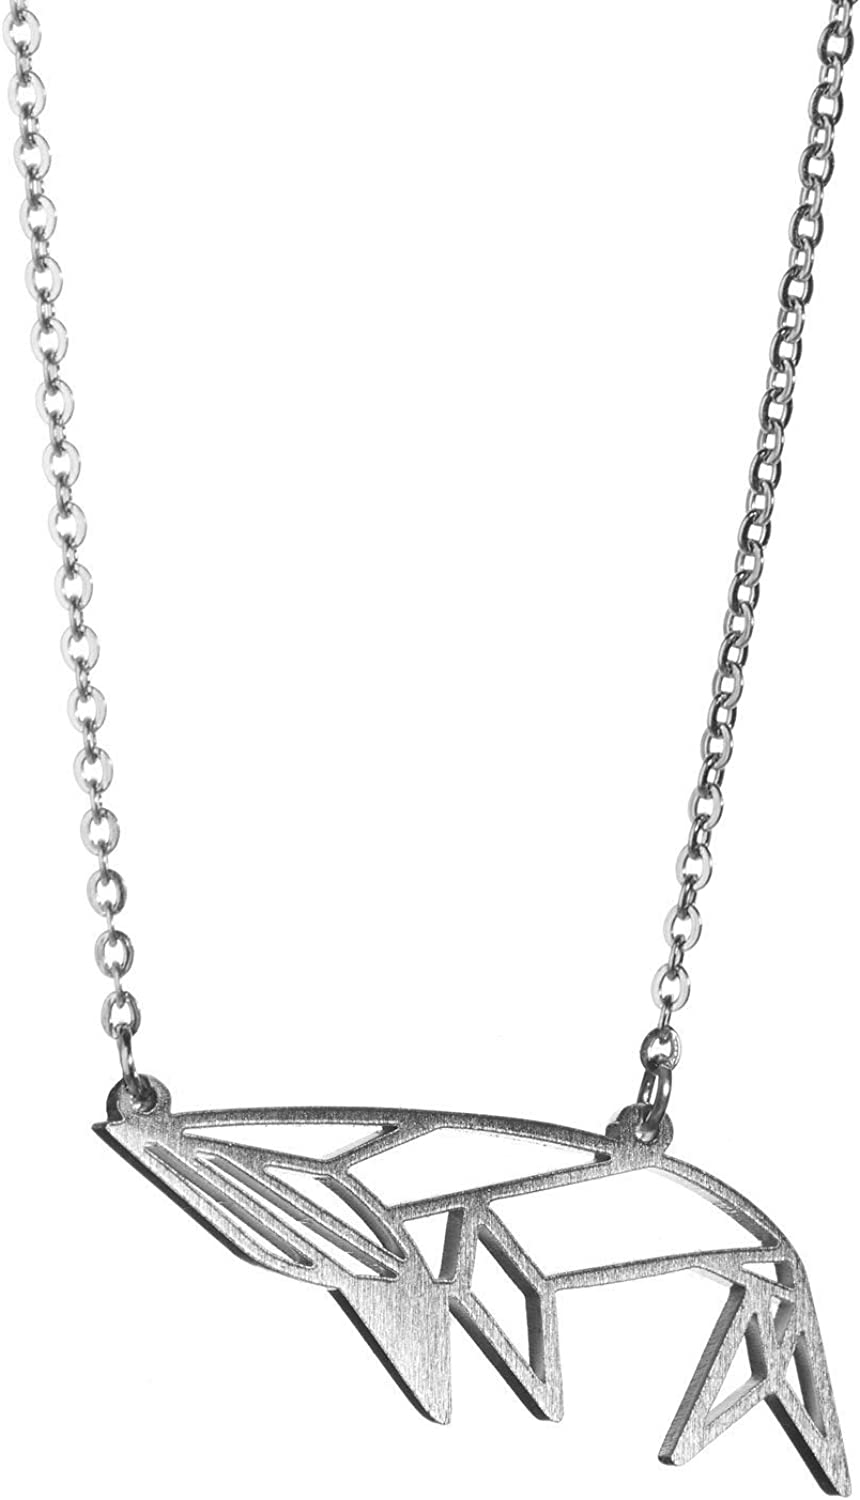 Unicorn Silver Unicorn Necklace for Girls /& Origami Necklace La Menagerie Origami Jewellery /& Silver Geometric Necklace 925 Sterling plated Silver Necklace /& Unicorn Necklaces for Women